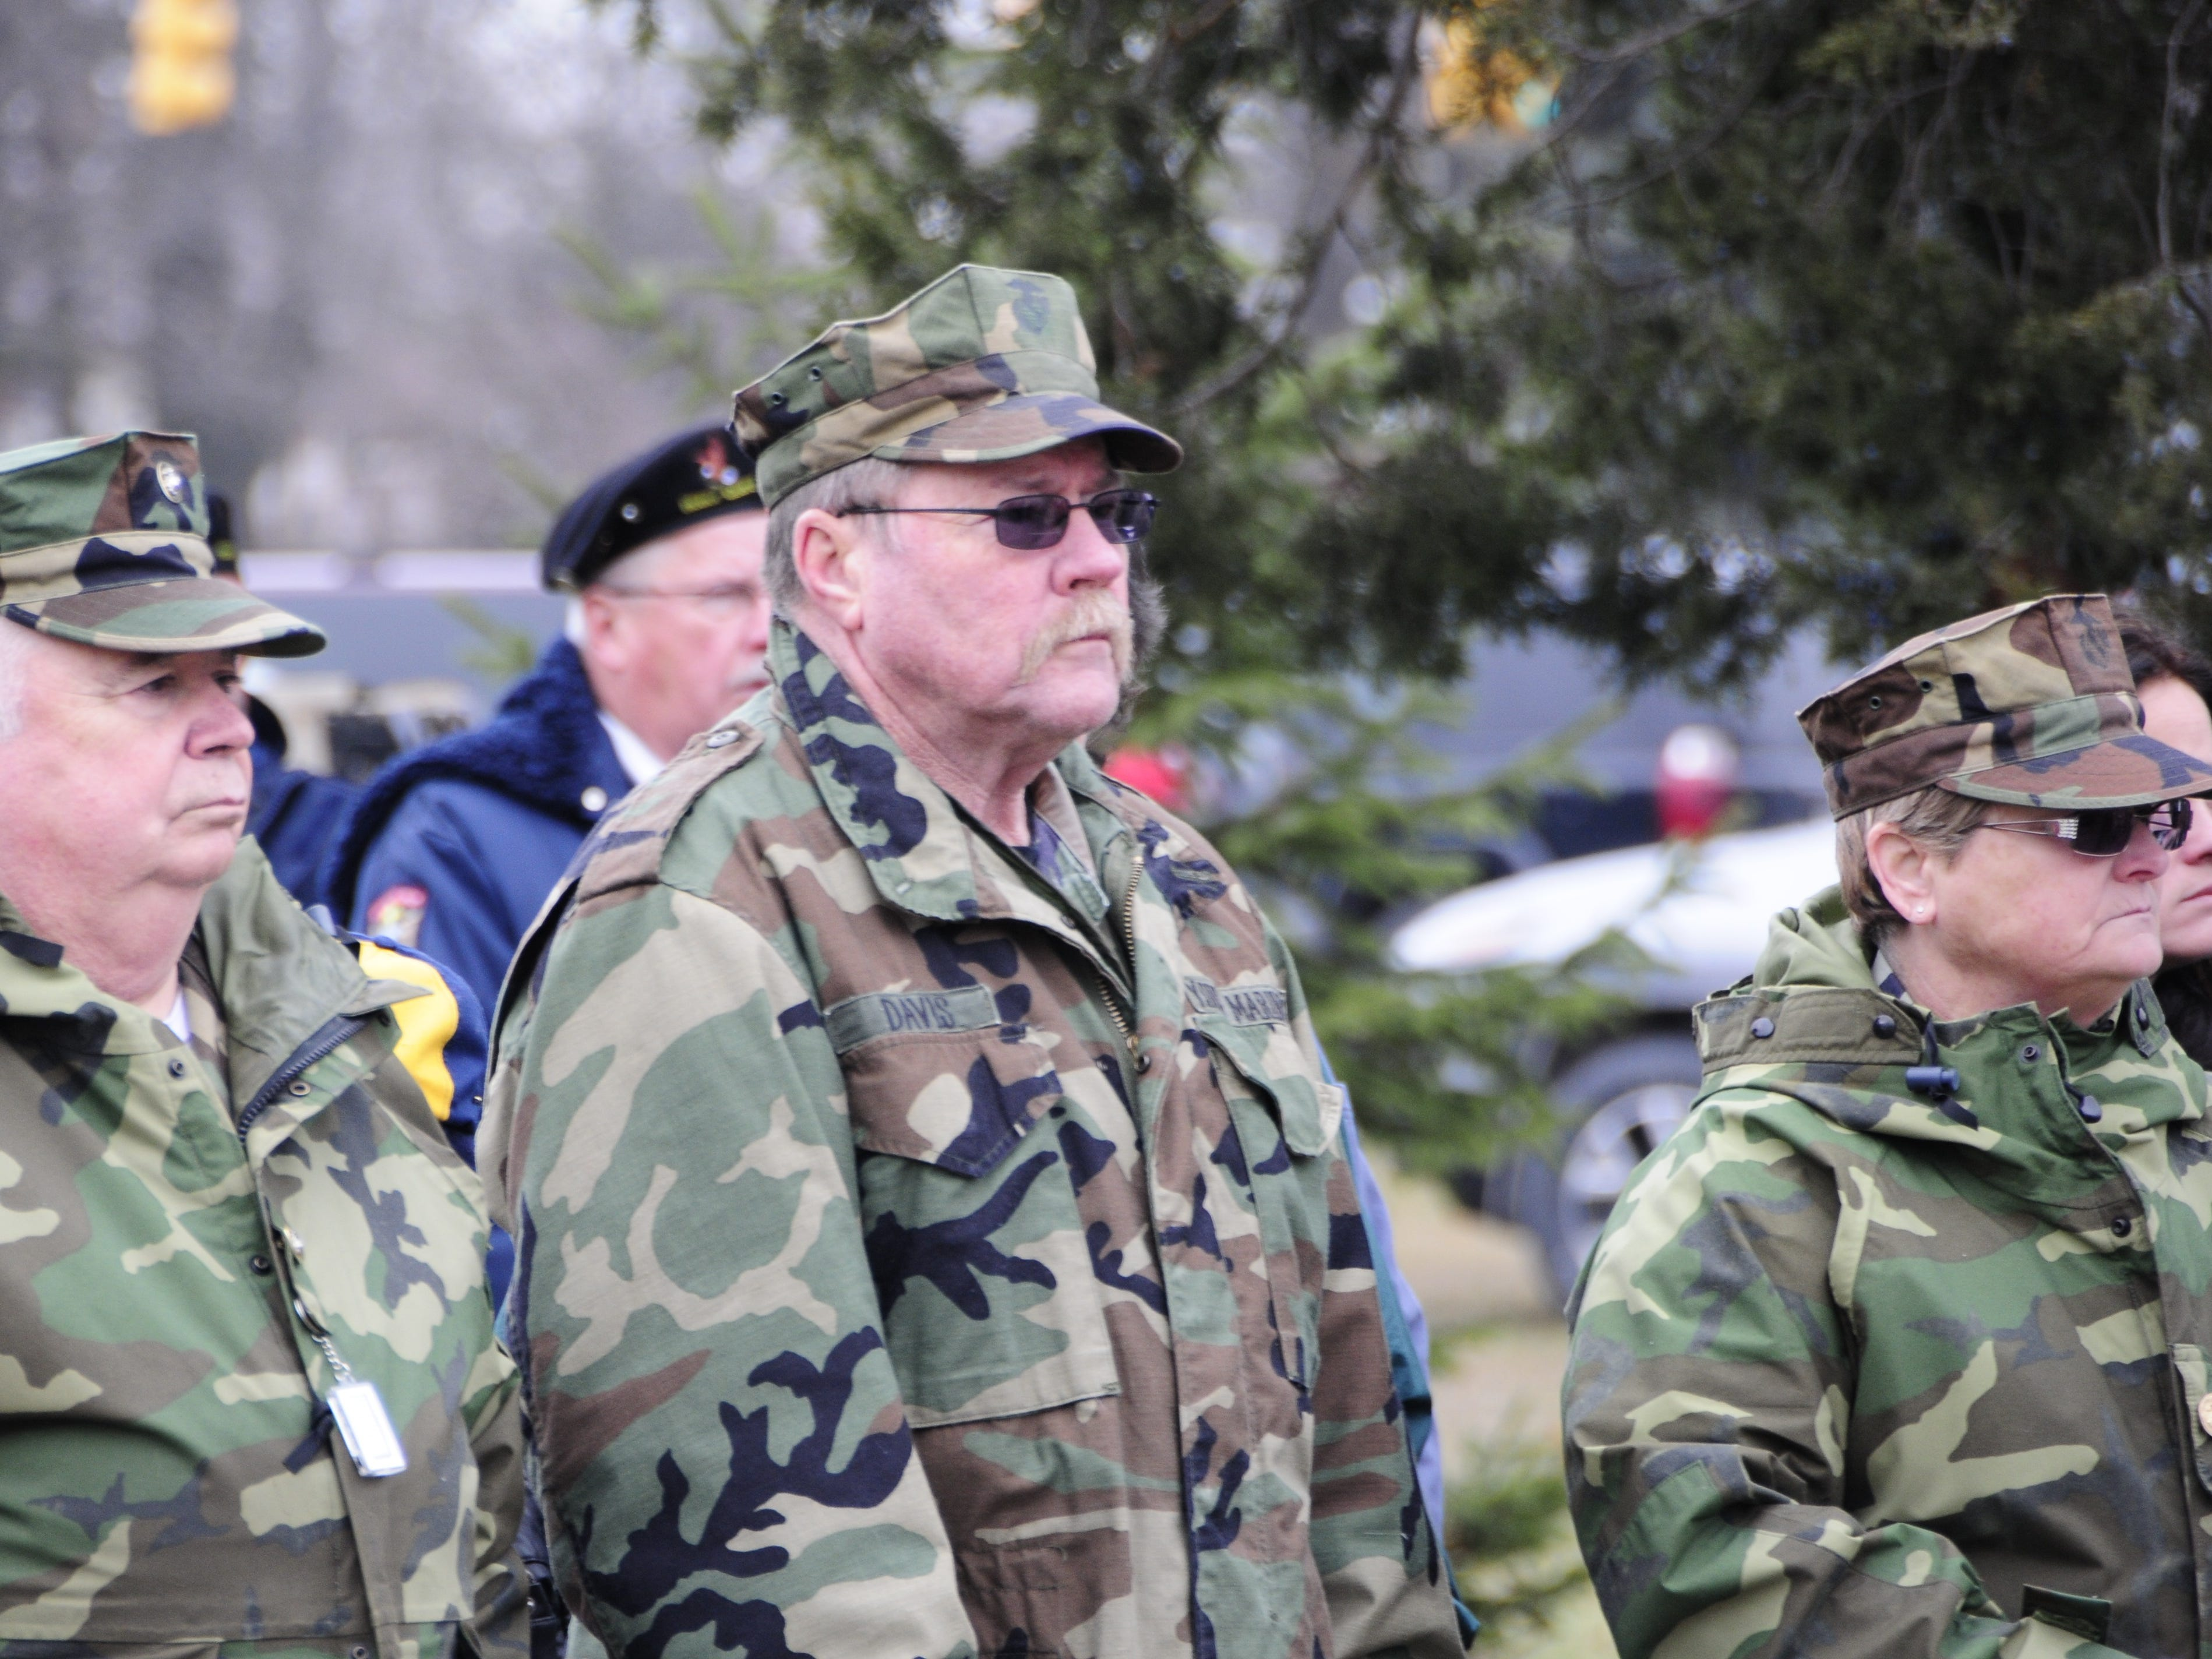 John Ritter, left, and Gary and Mary Davis listen to speakers during the Wreaths Across America event on Saturday, Dec. 15, 2018 at the St. Clair County Allied Veterans Cemetery.